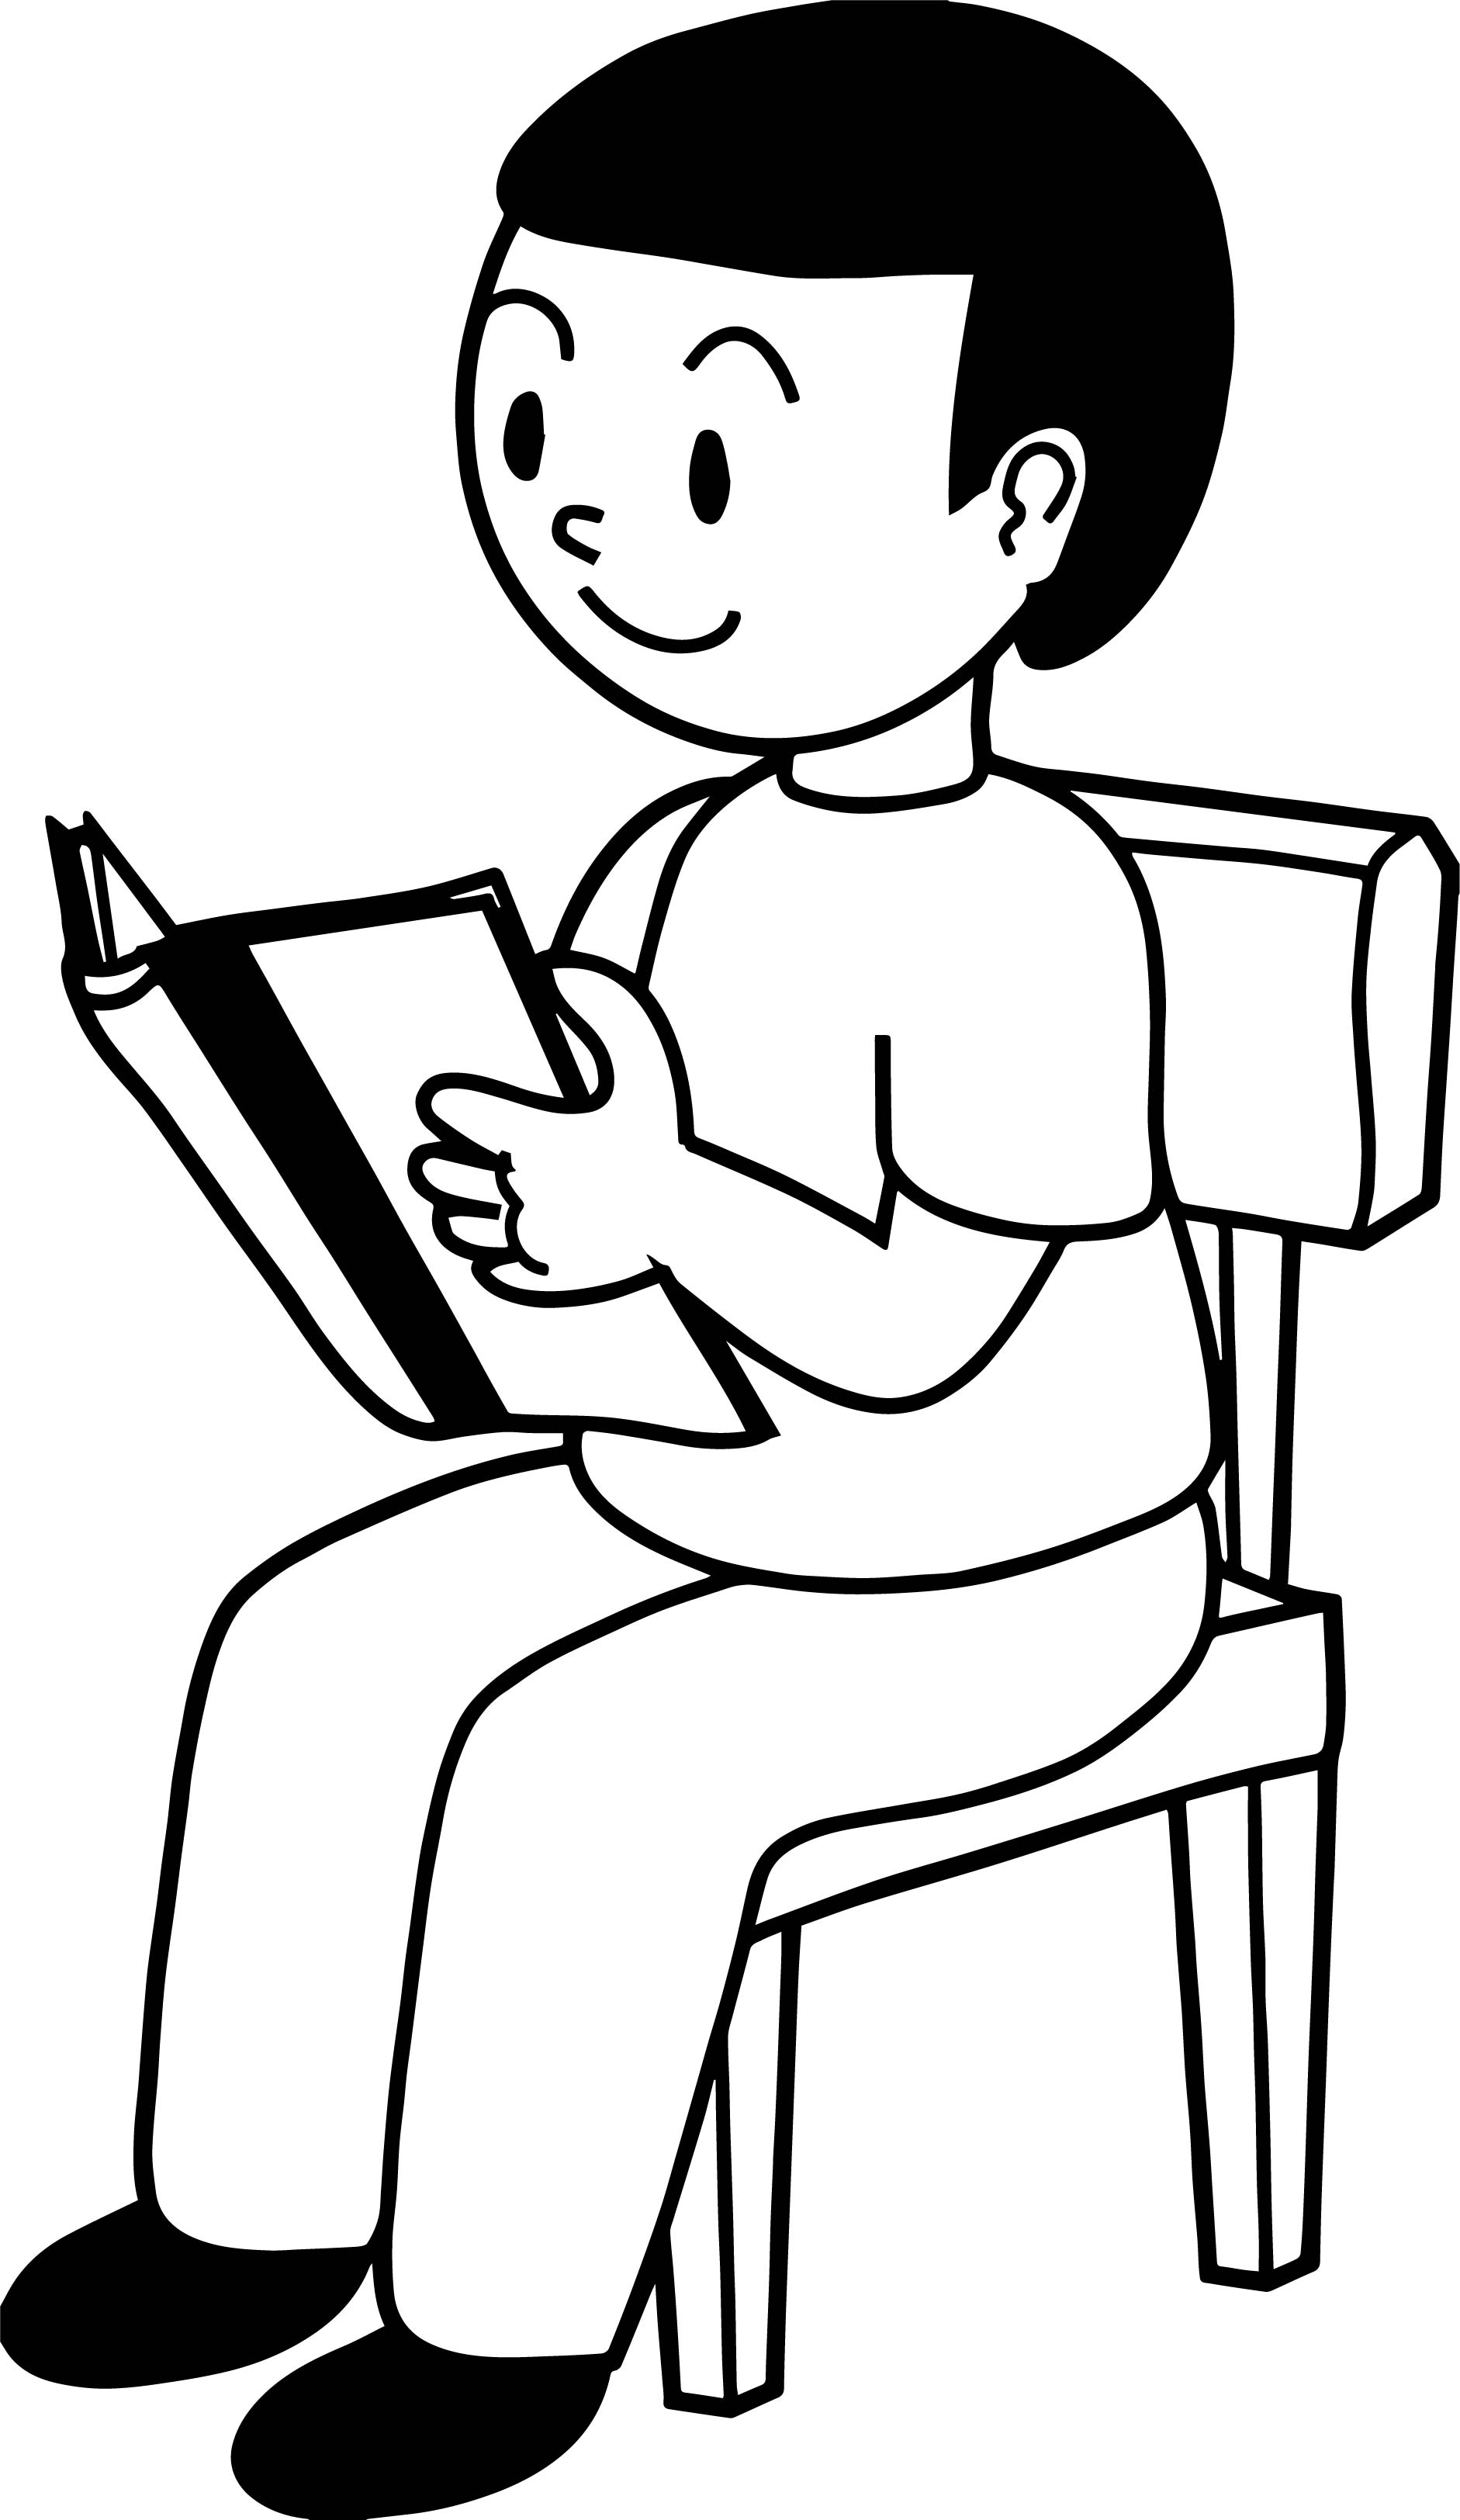 Staying And Reading Boy Coloring Page